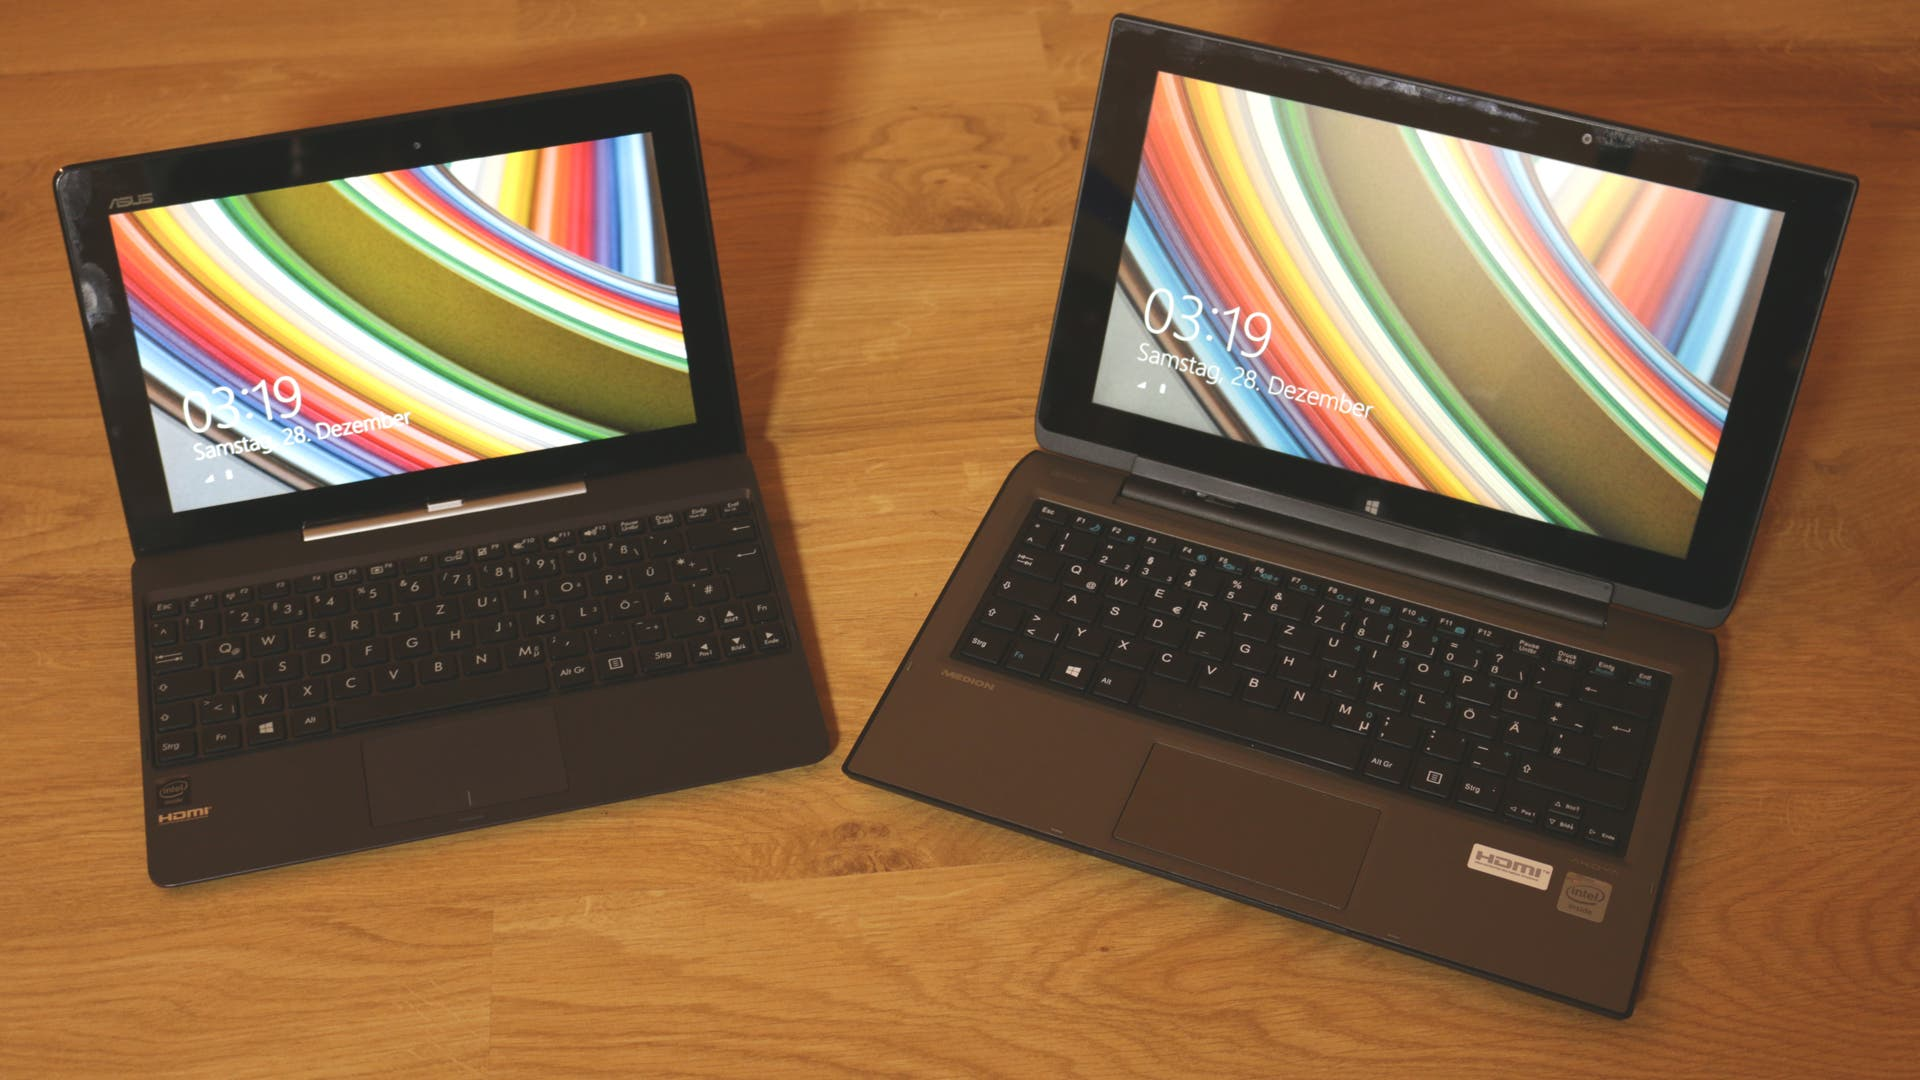 ASUS Transformer Book T100TA vs. Medion Akoya P2211T im Benchmark-Vergleich – Video